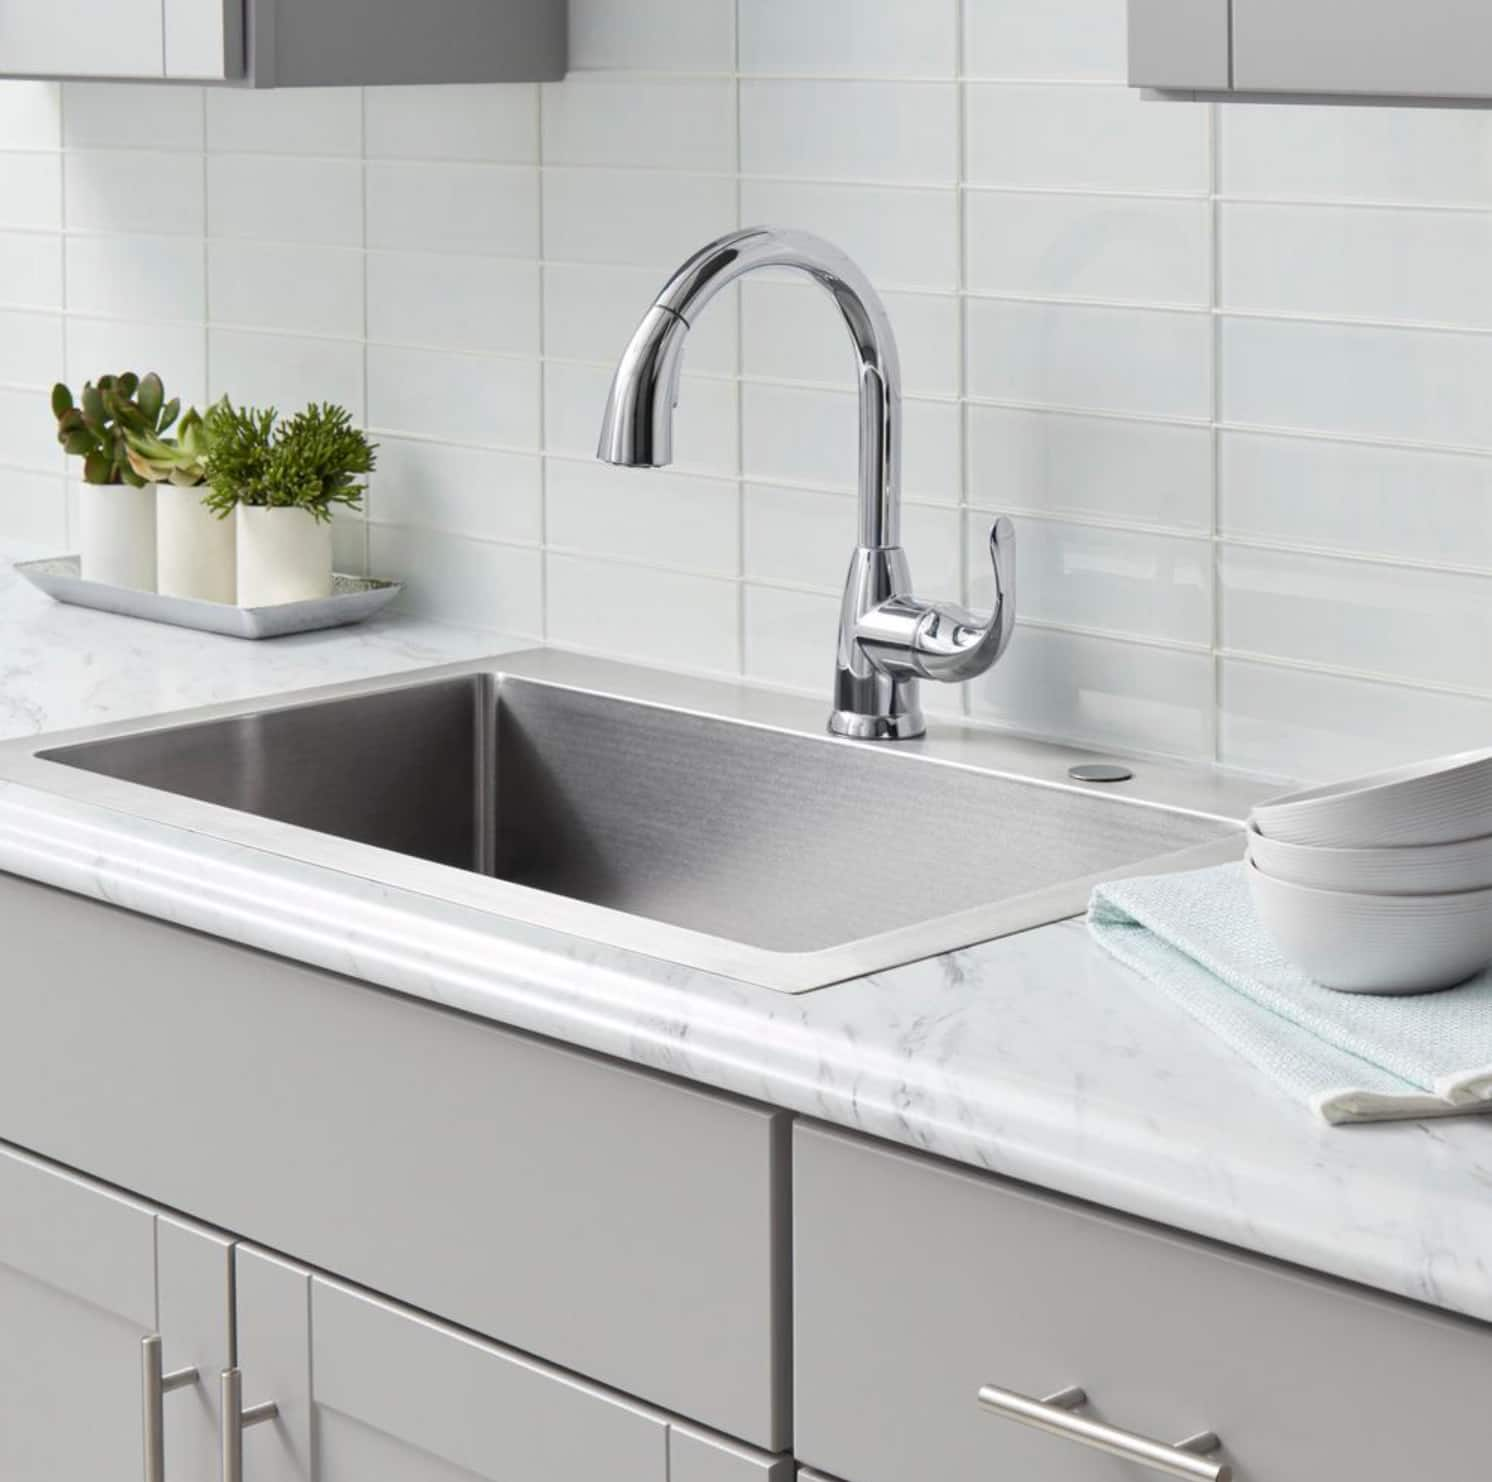 The Home Depot: Up to 40% Off Select Bath, Vanities, and Faucets + Free Shipping/Store Pickup